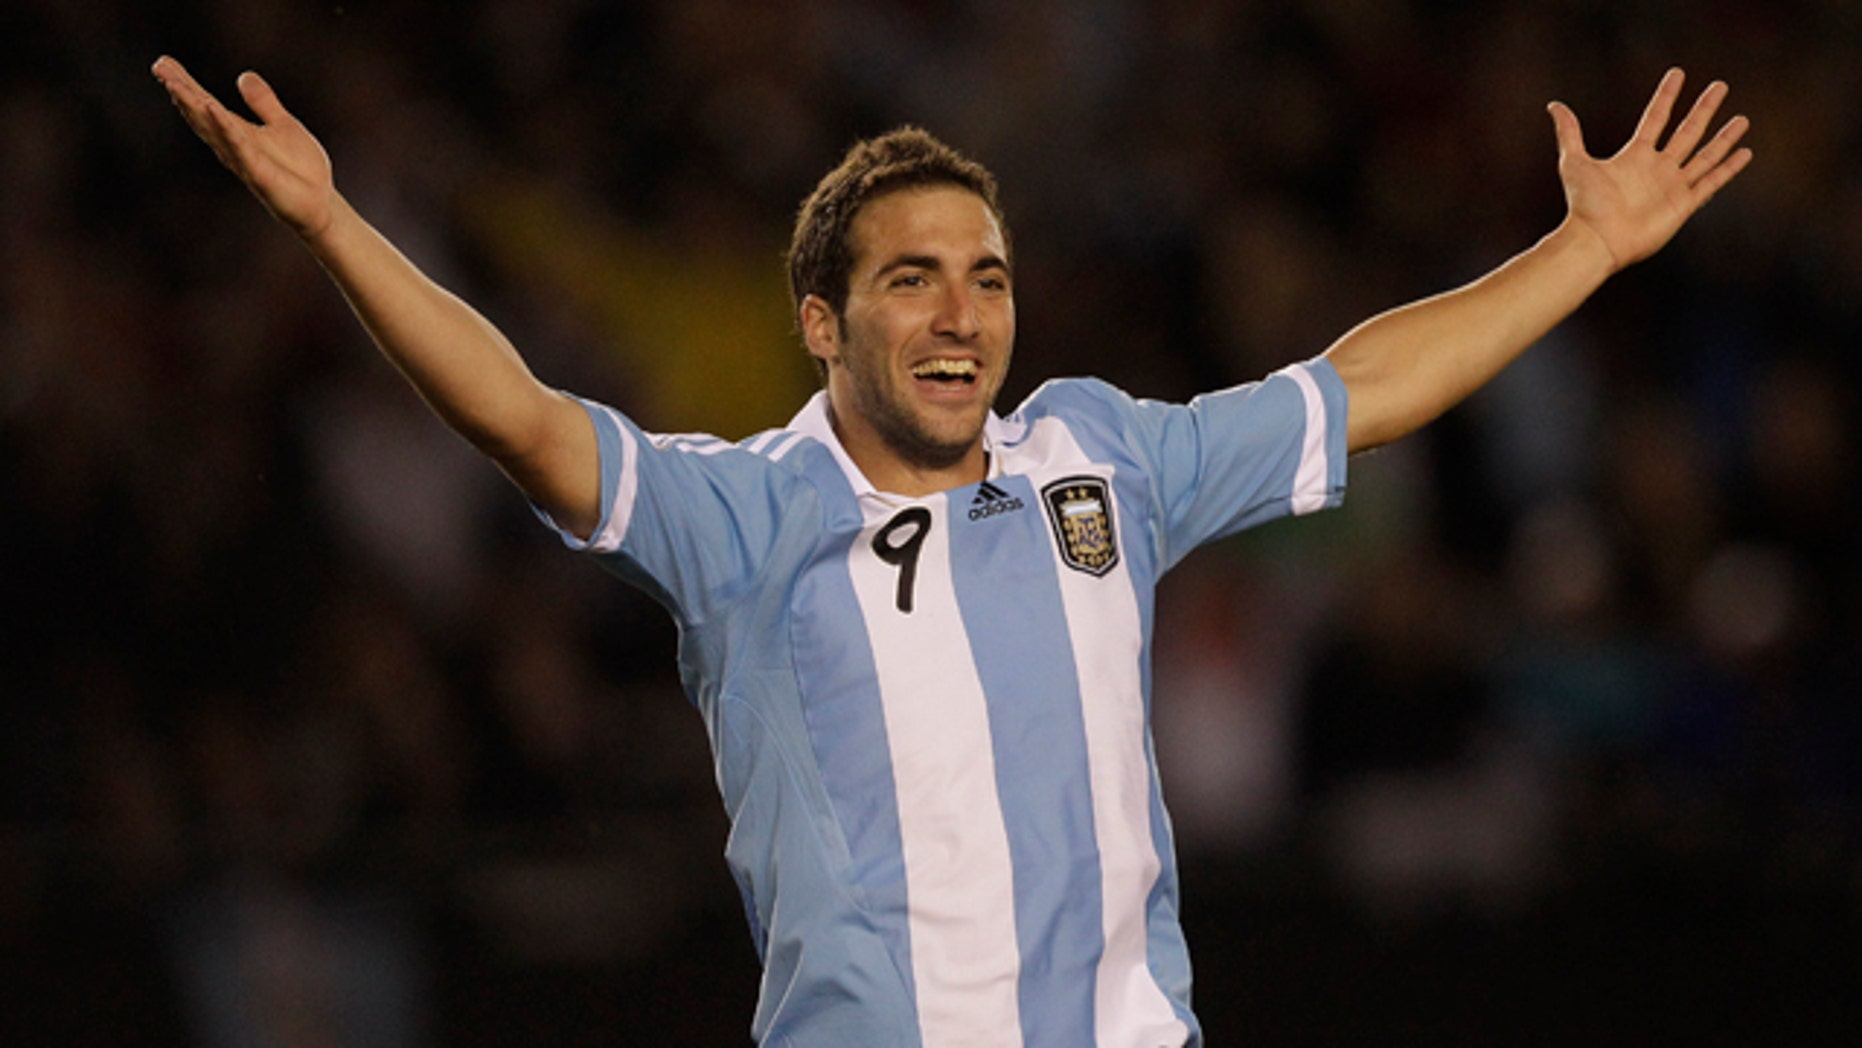 Argentina's Gonzalo Higuain celebrates after scoring his team's third goal during a World Cup 2014 qualifying soccer game against Chile in Buenos Aires, Argentina,  Friday, Oct. 7, 2011. (AP Photo/Eduardo Di Baia)